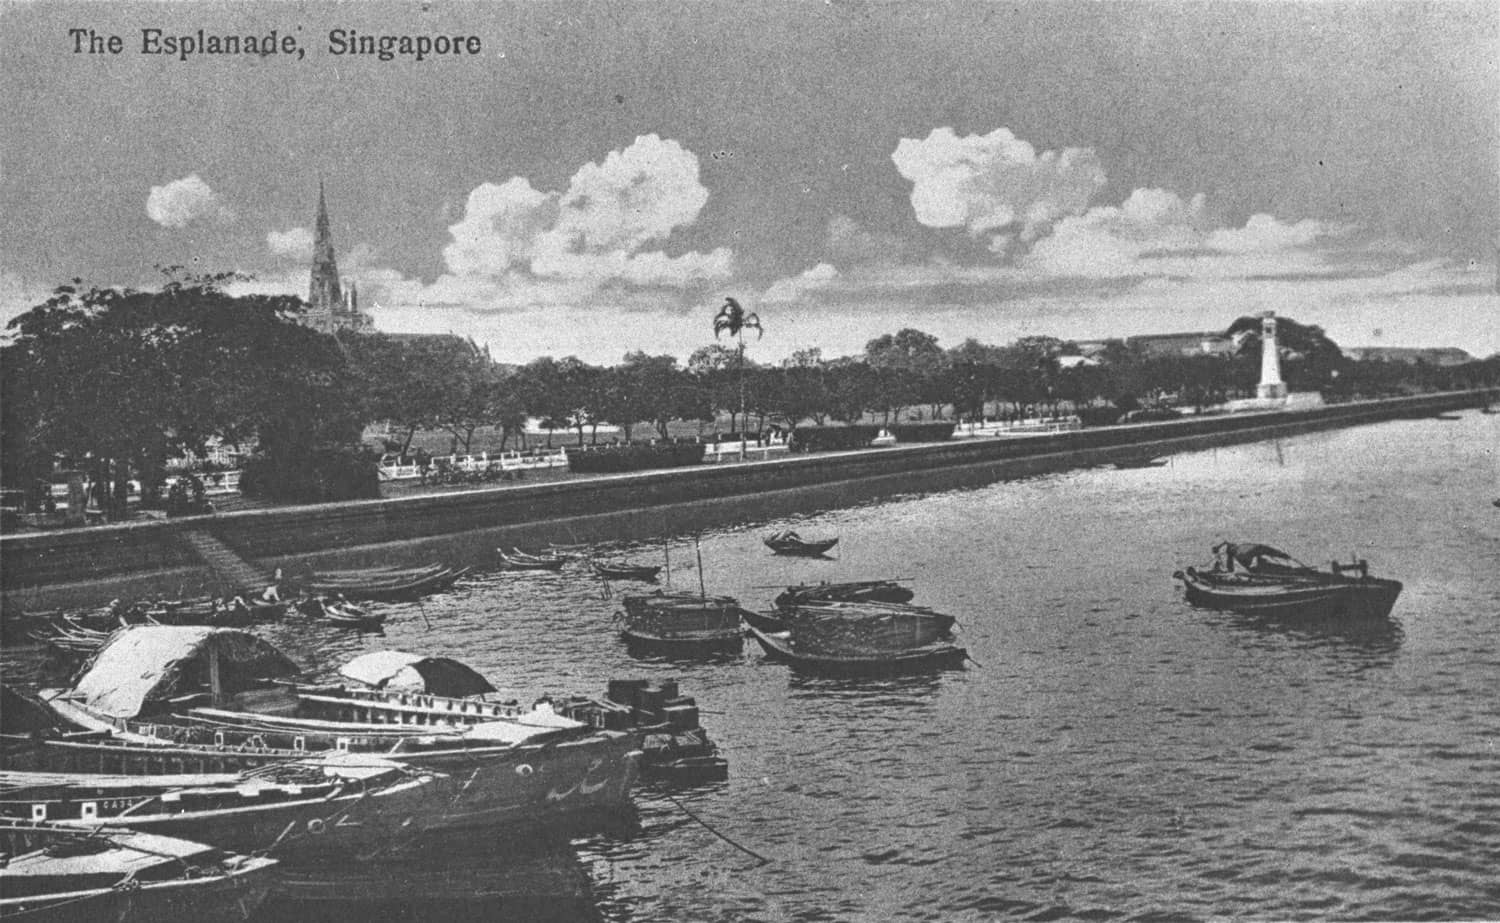 View of the Esplanade from the sea, c. 1920s